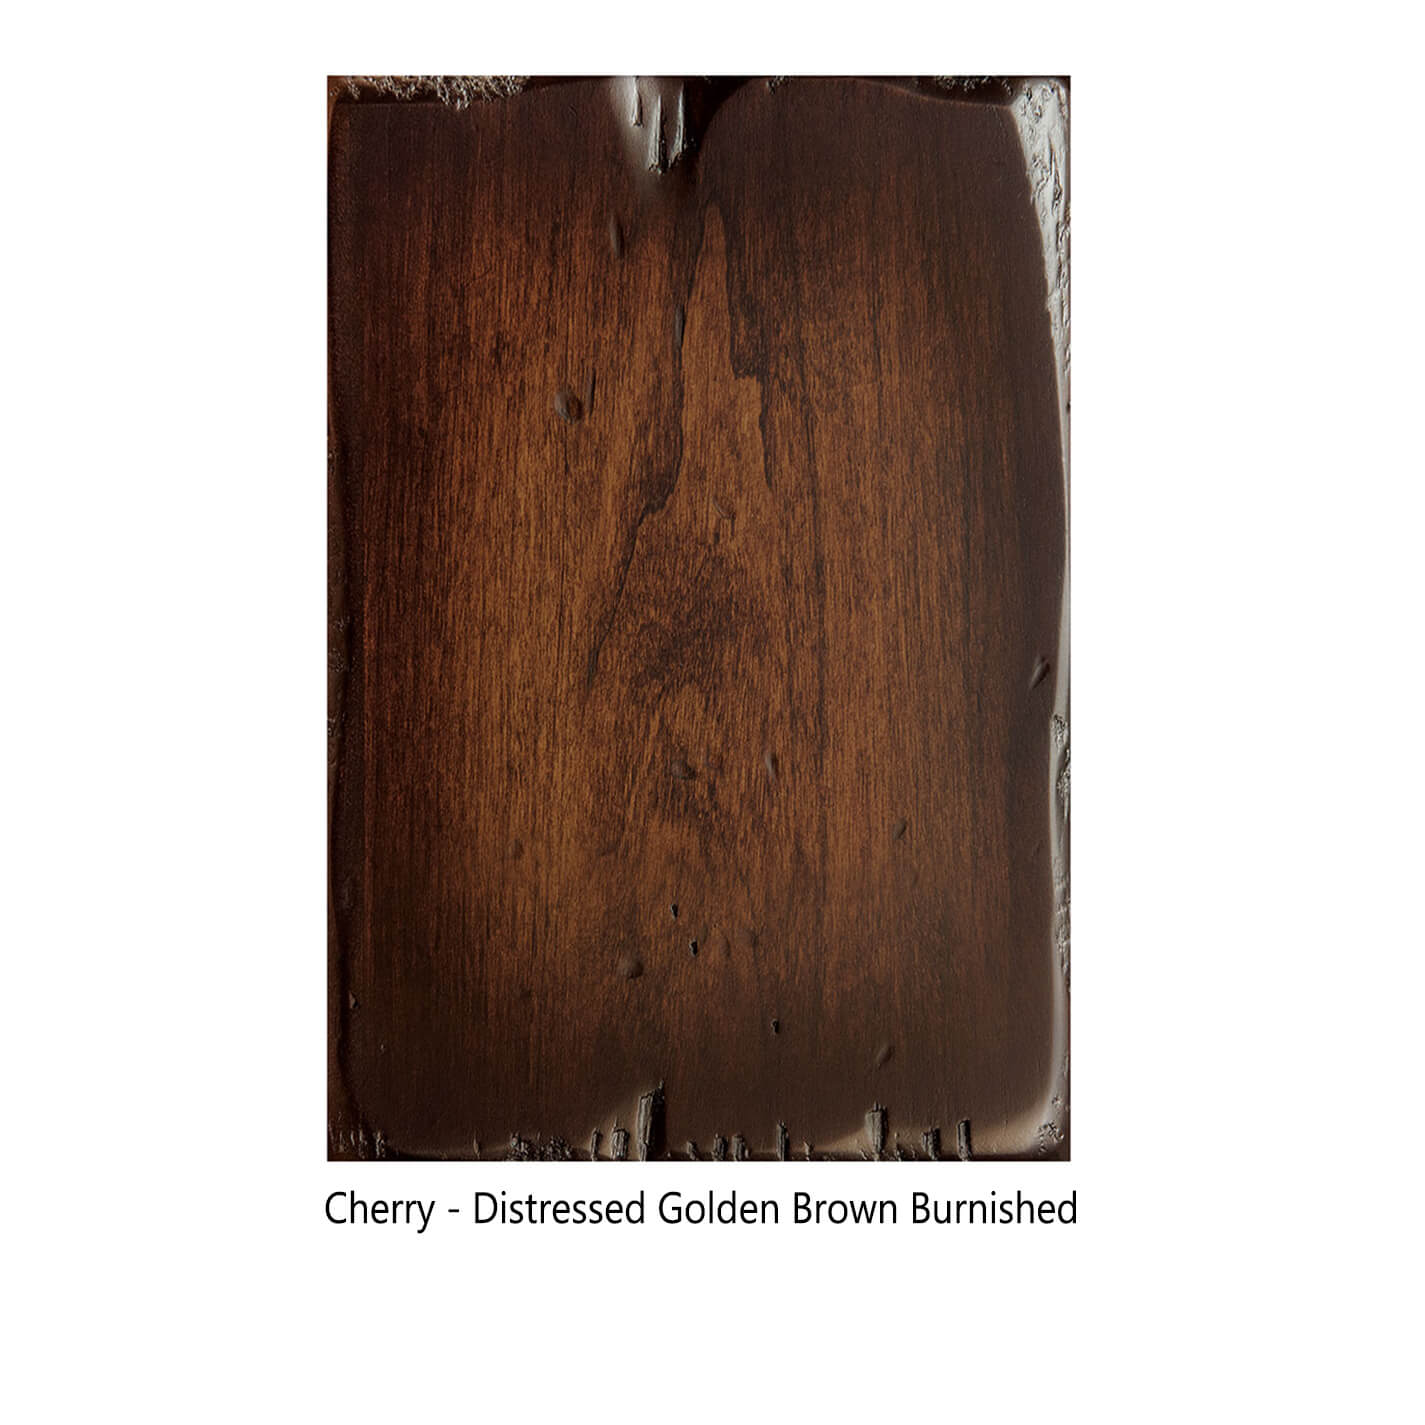 cherry-distressed-golden-brown-burnished-category-3-10-sheen-copy.jpg